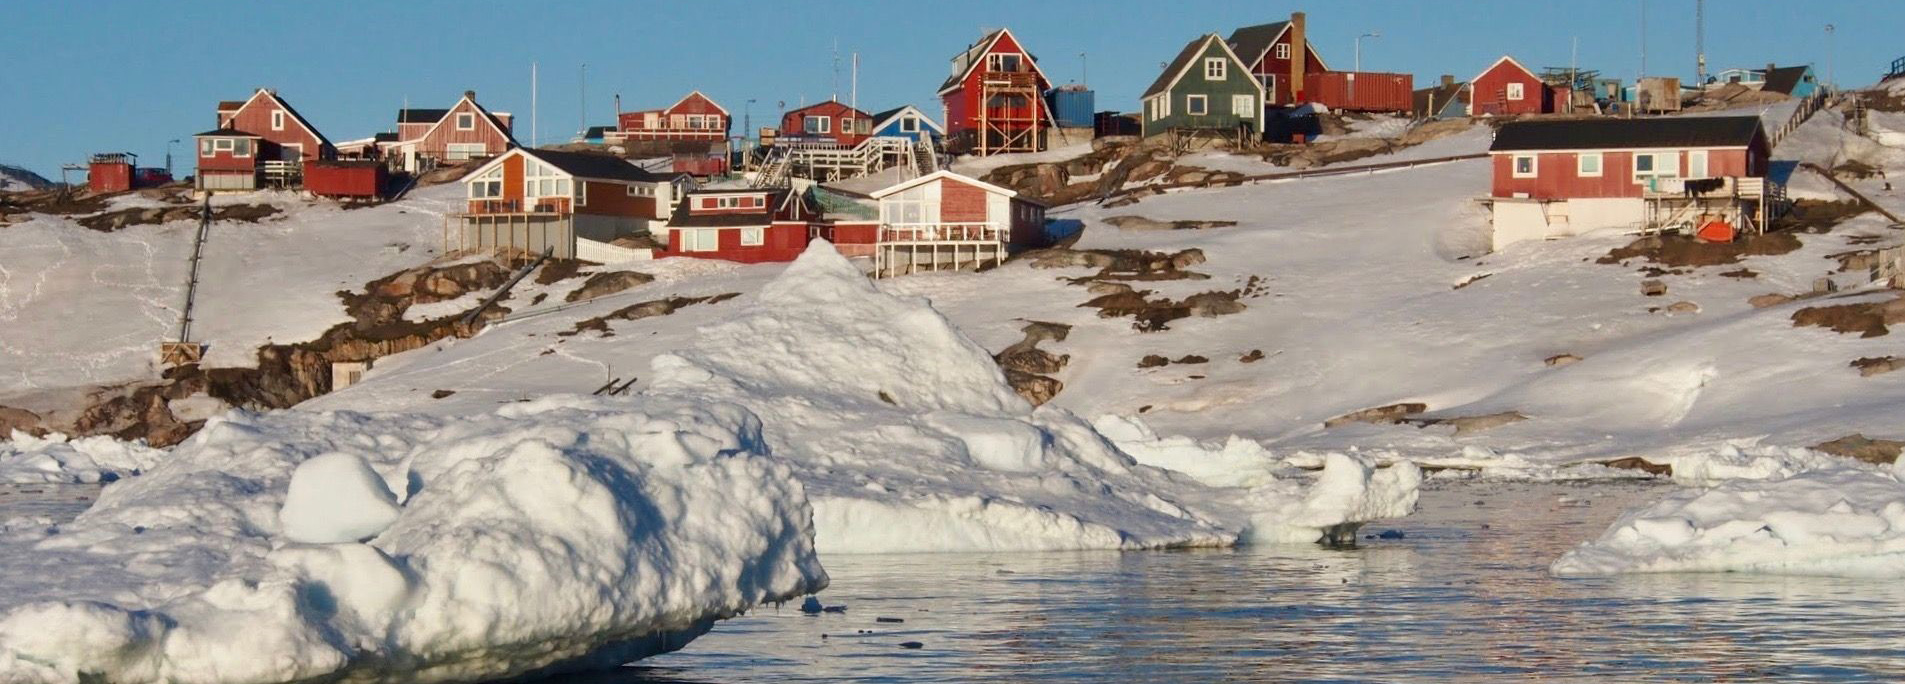 Houses near the Greenland coast